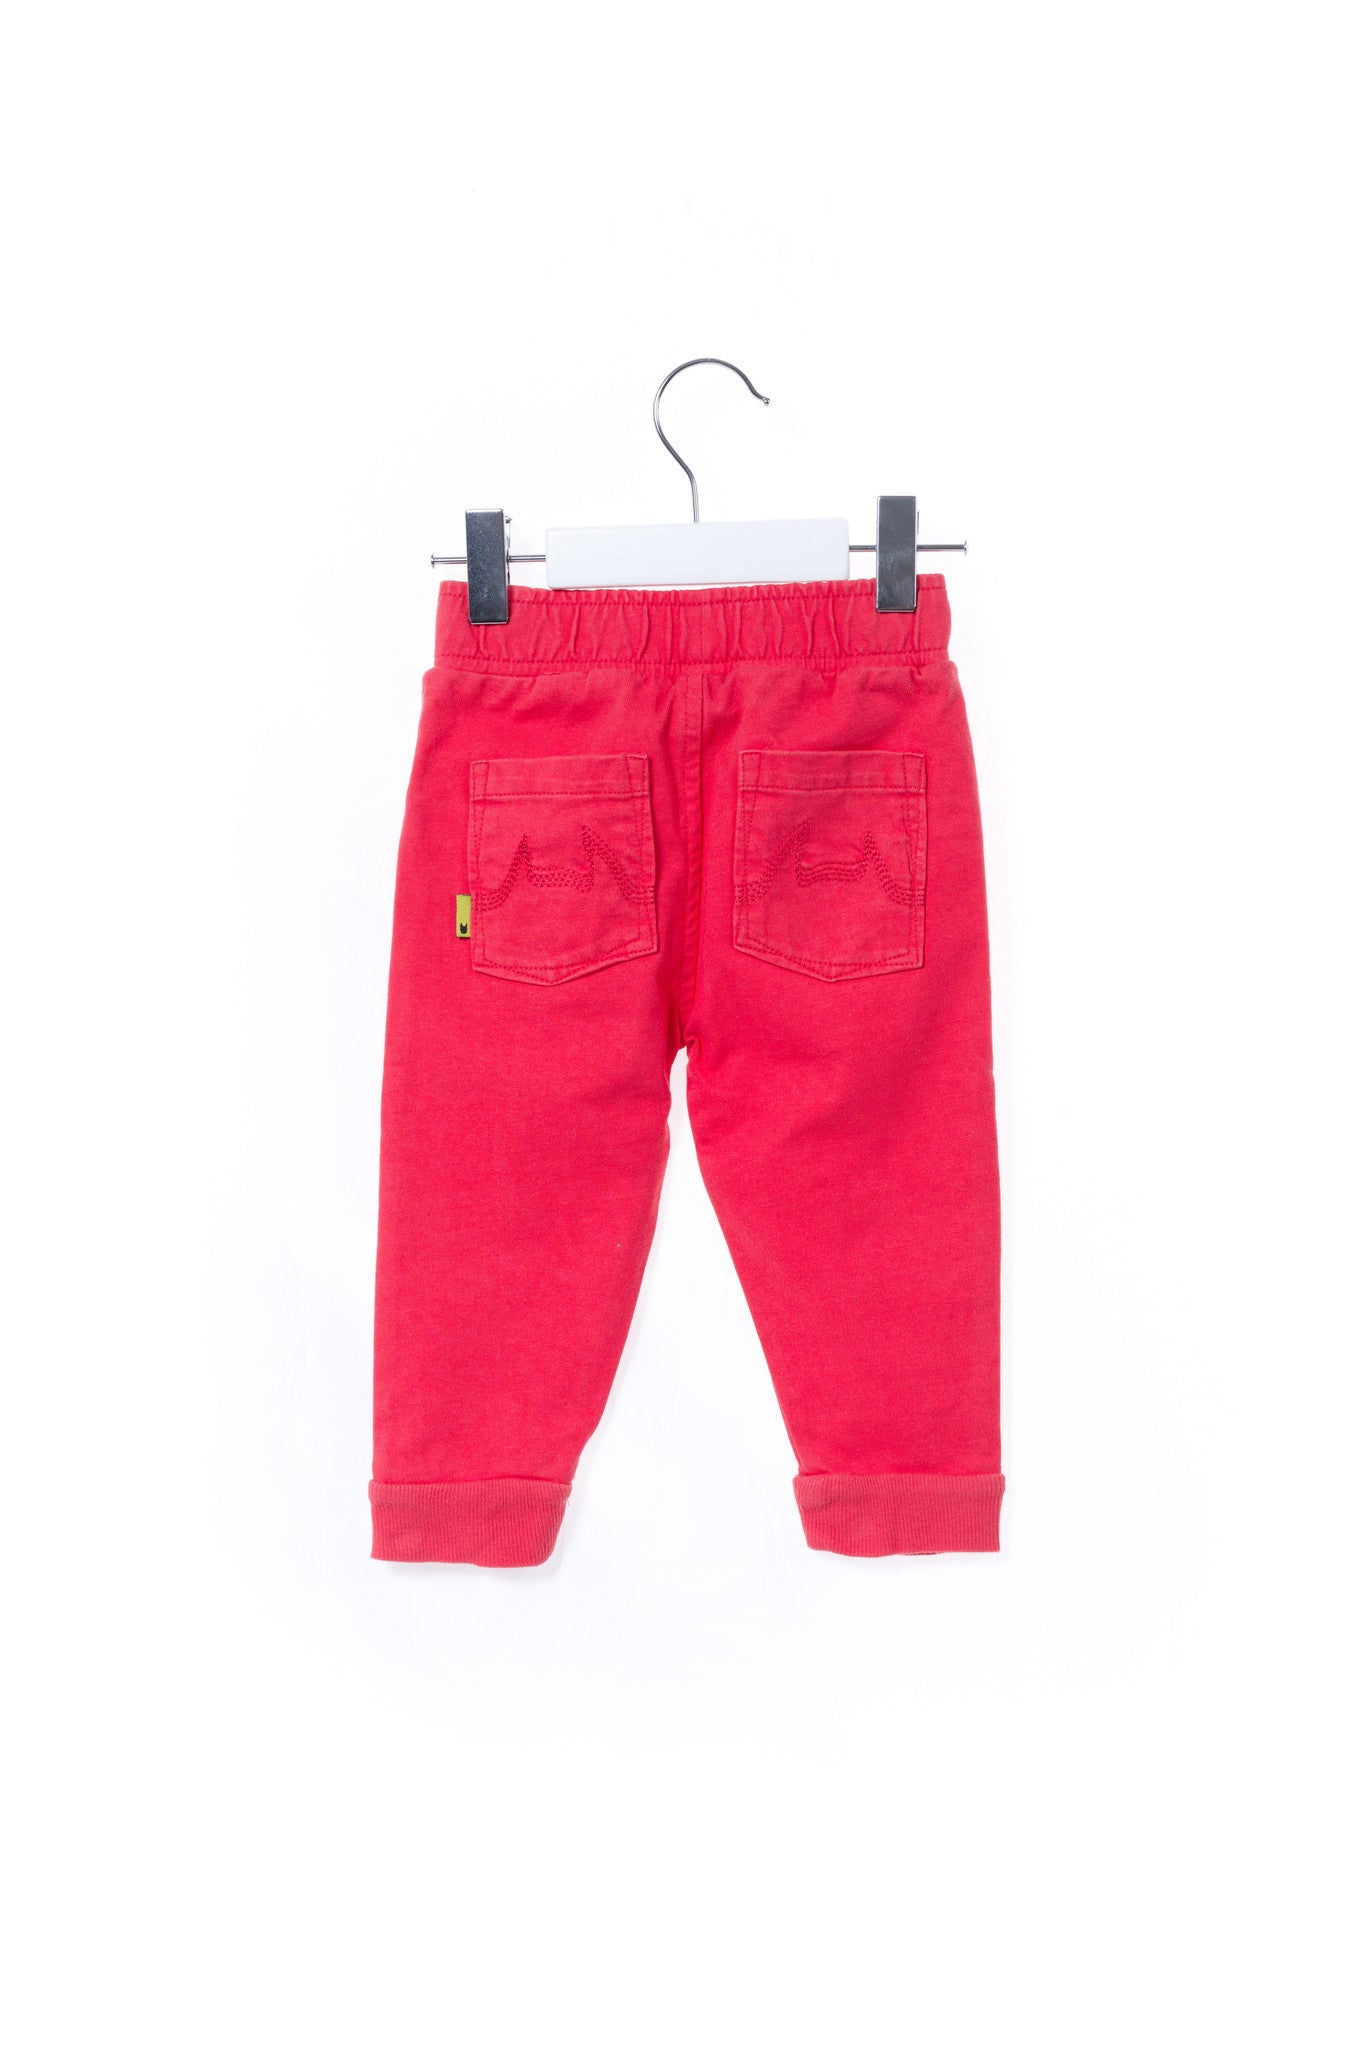 Munster at Retykle | Online Shopping Discount Baby & Kids Clothes Hong Kong